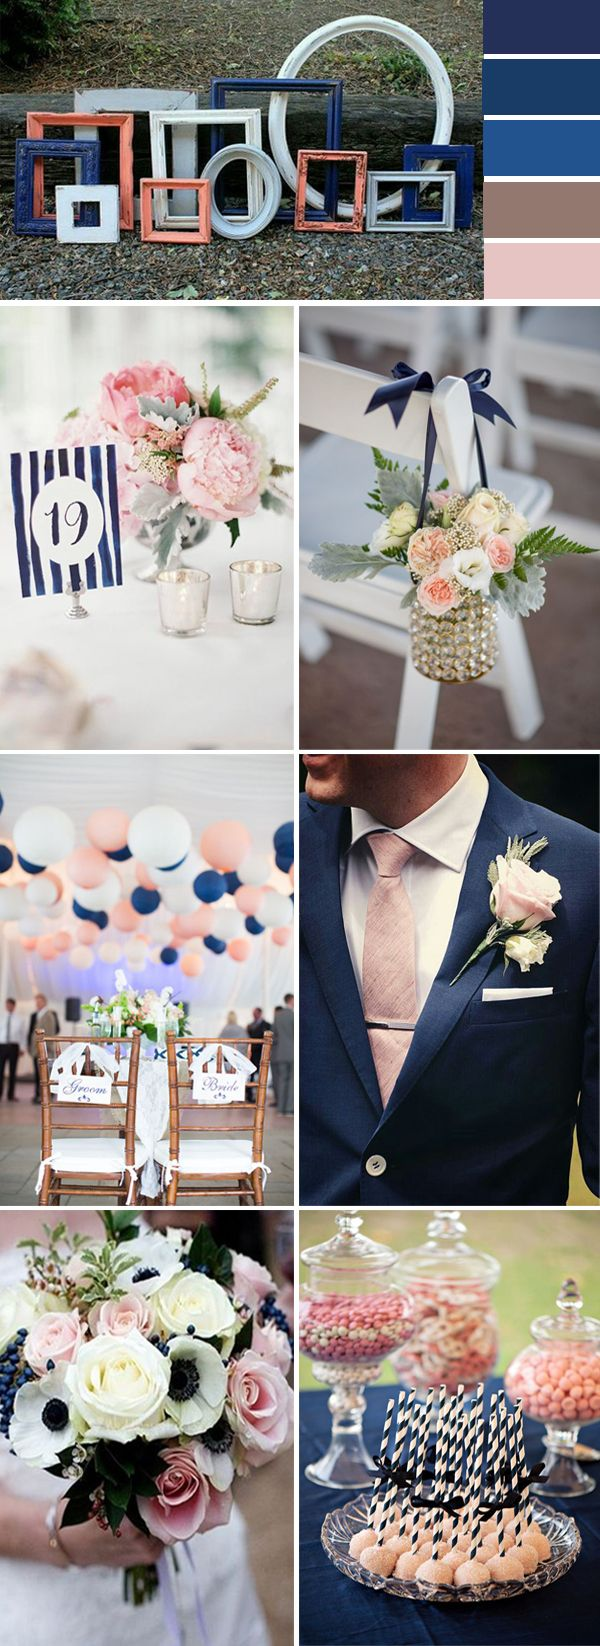 Top 10 Wedding Color Ideas For 2017 Spring Summer